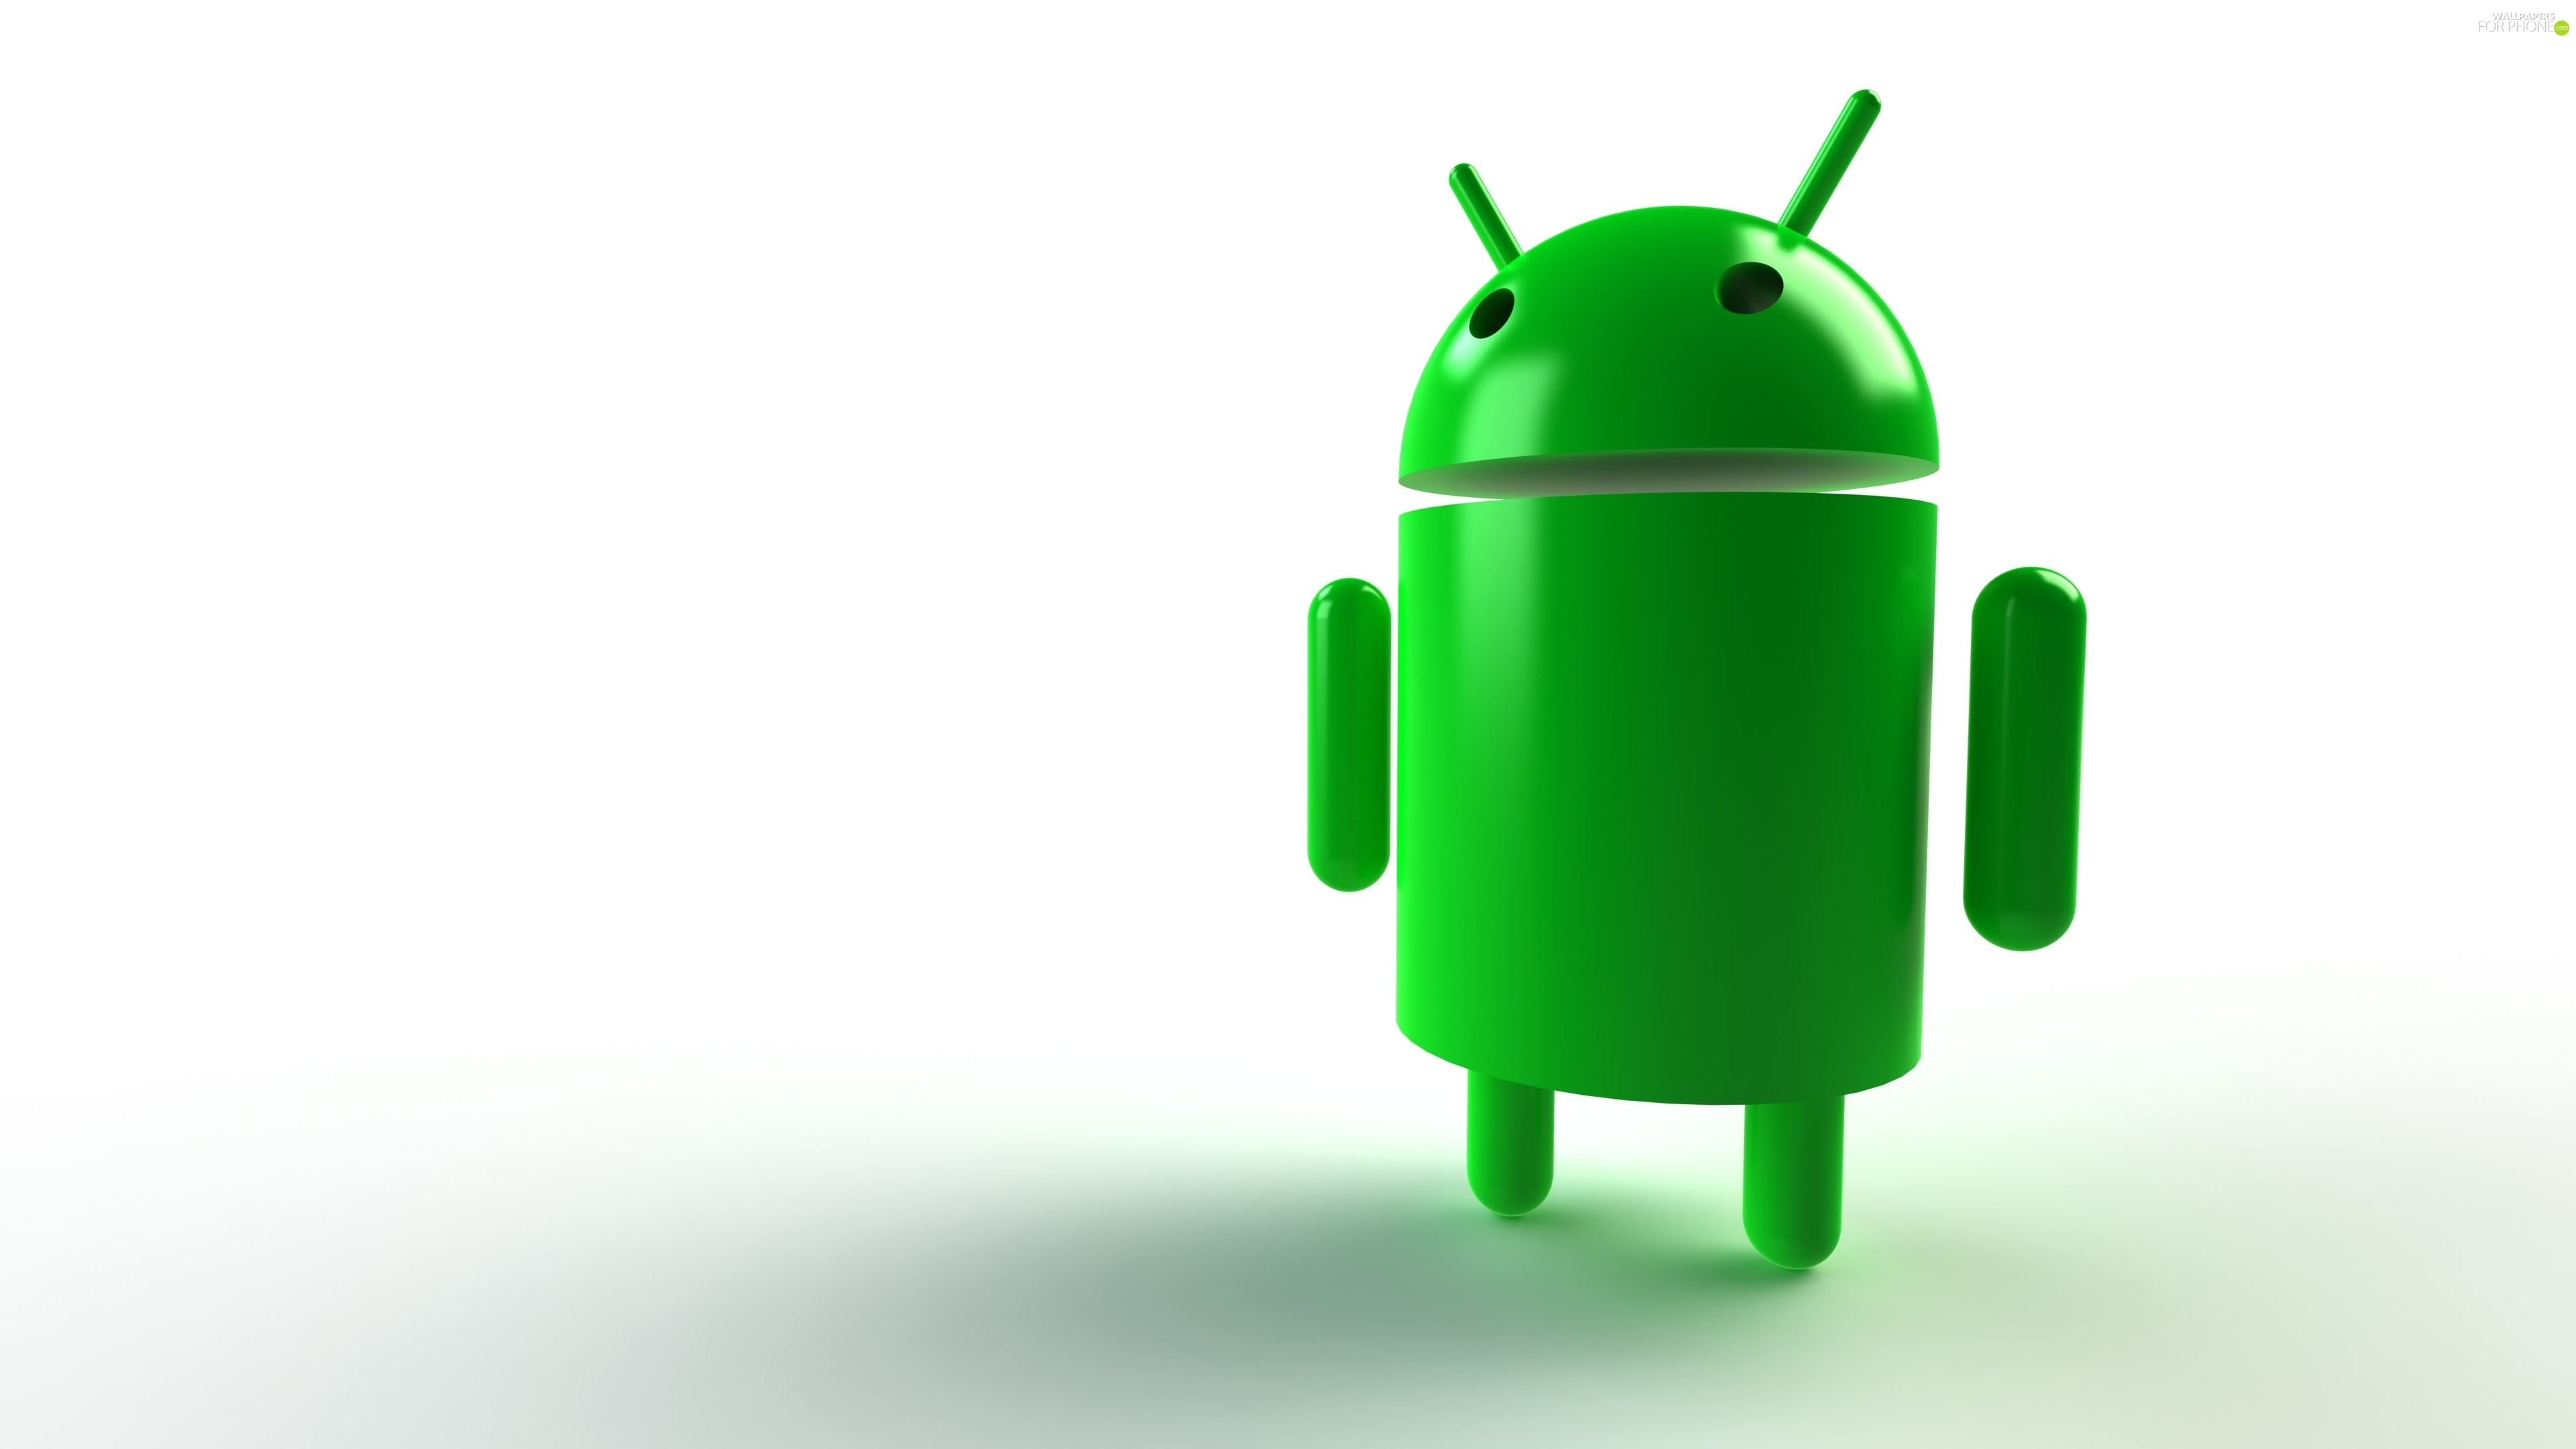 3d Wallpapers For Android Phones: For Phone Wallpapers: 3840x2160